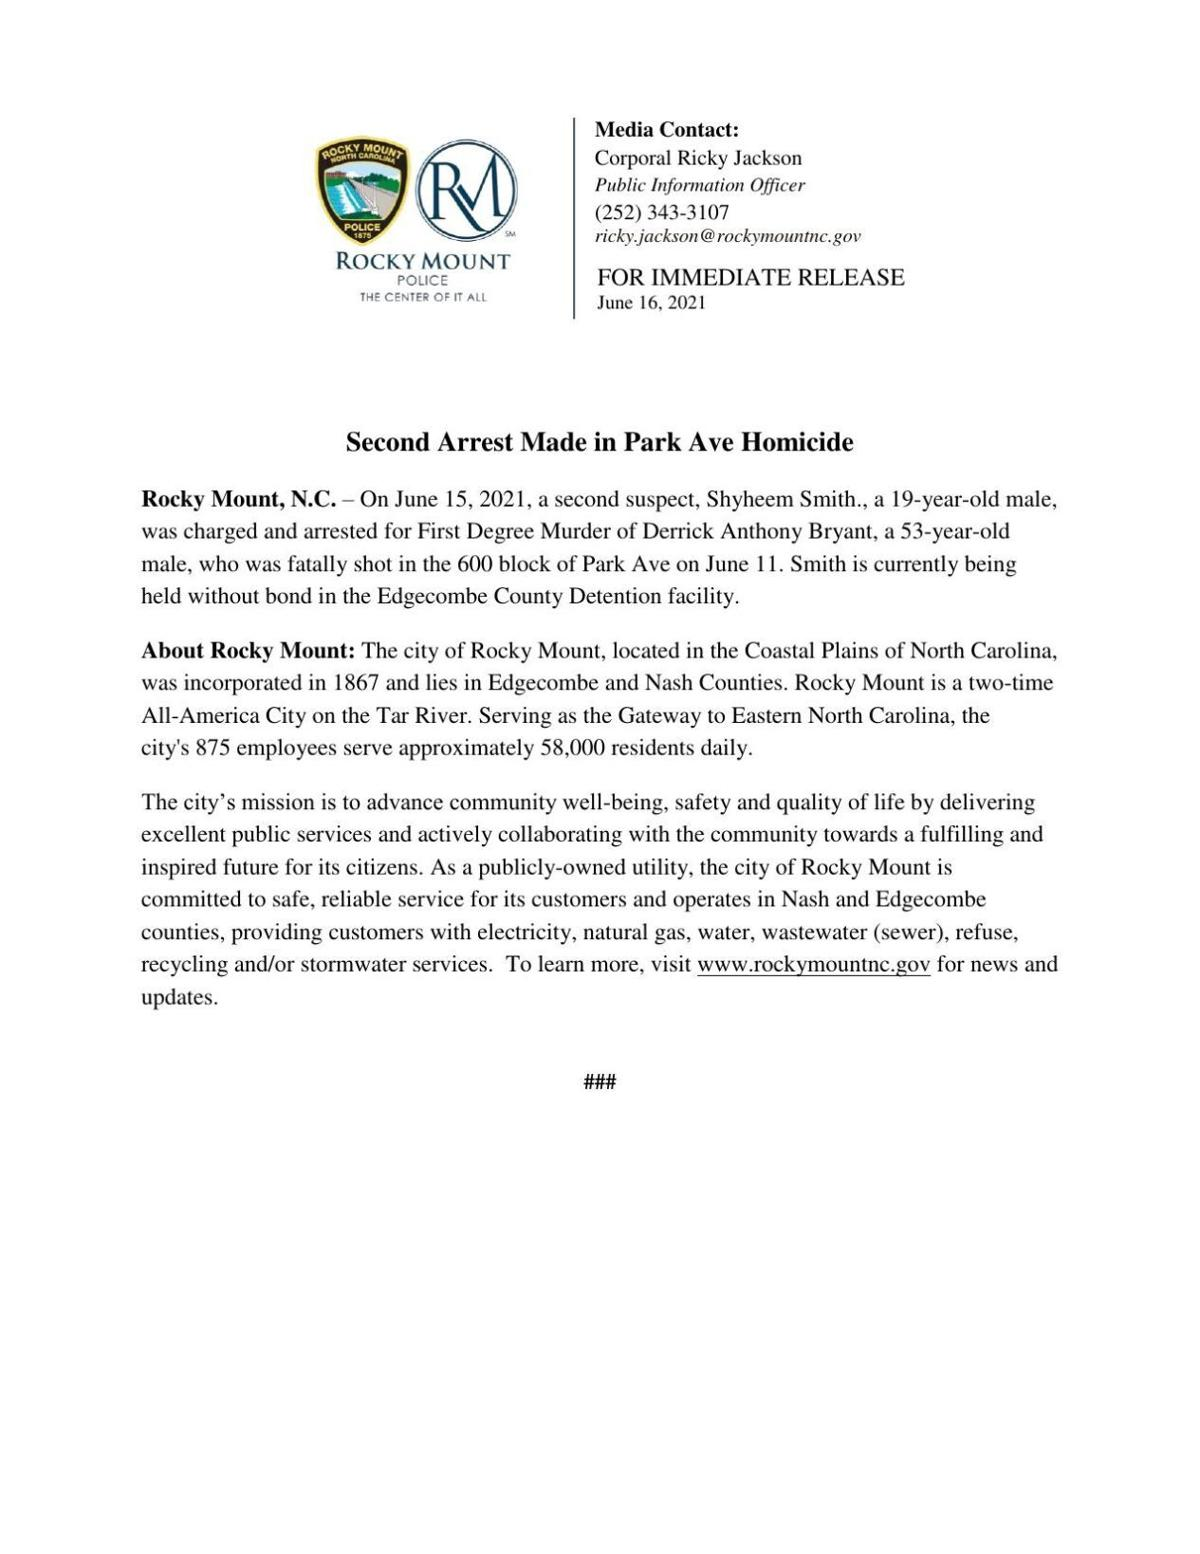 News release about second murder suspect